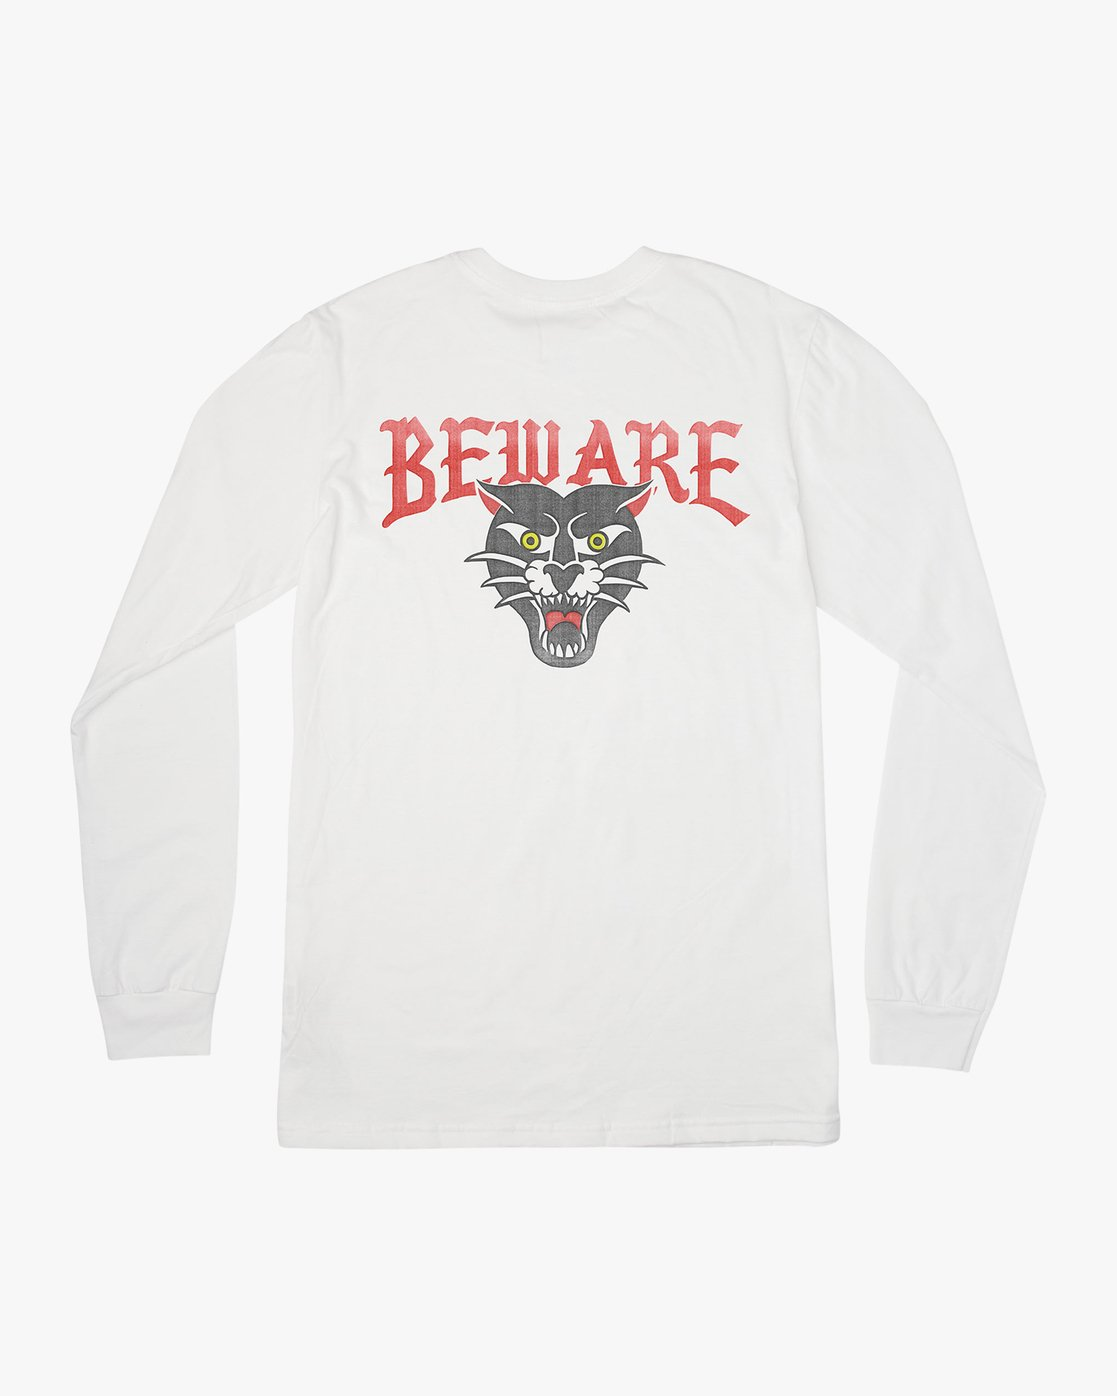 0 Suzuki Beware Long Sleeve T-Shirt White M451URBE RVCA